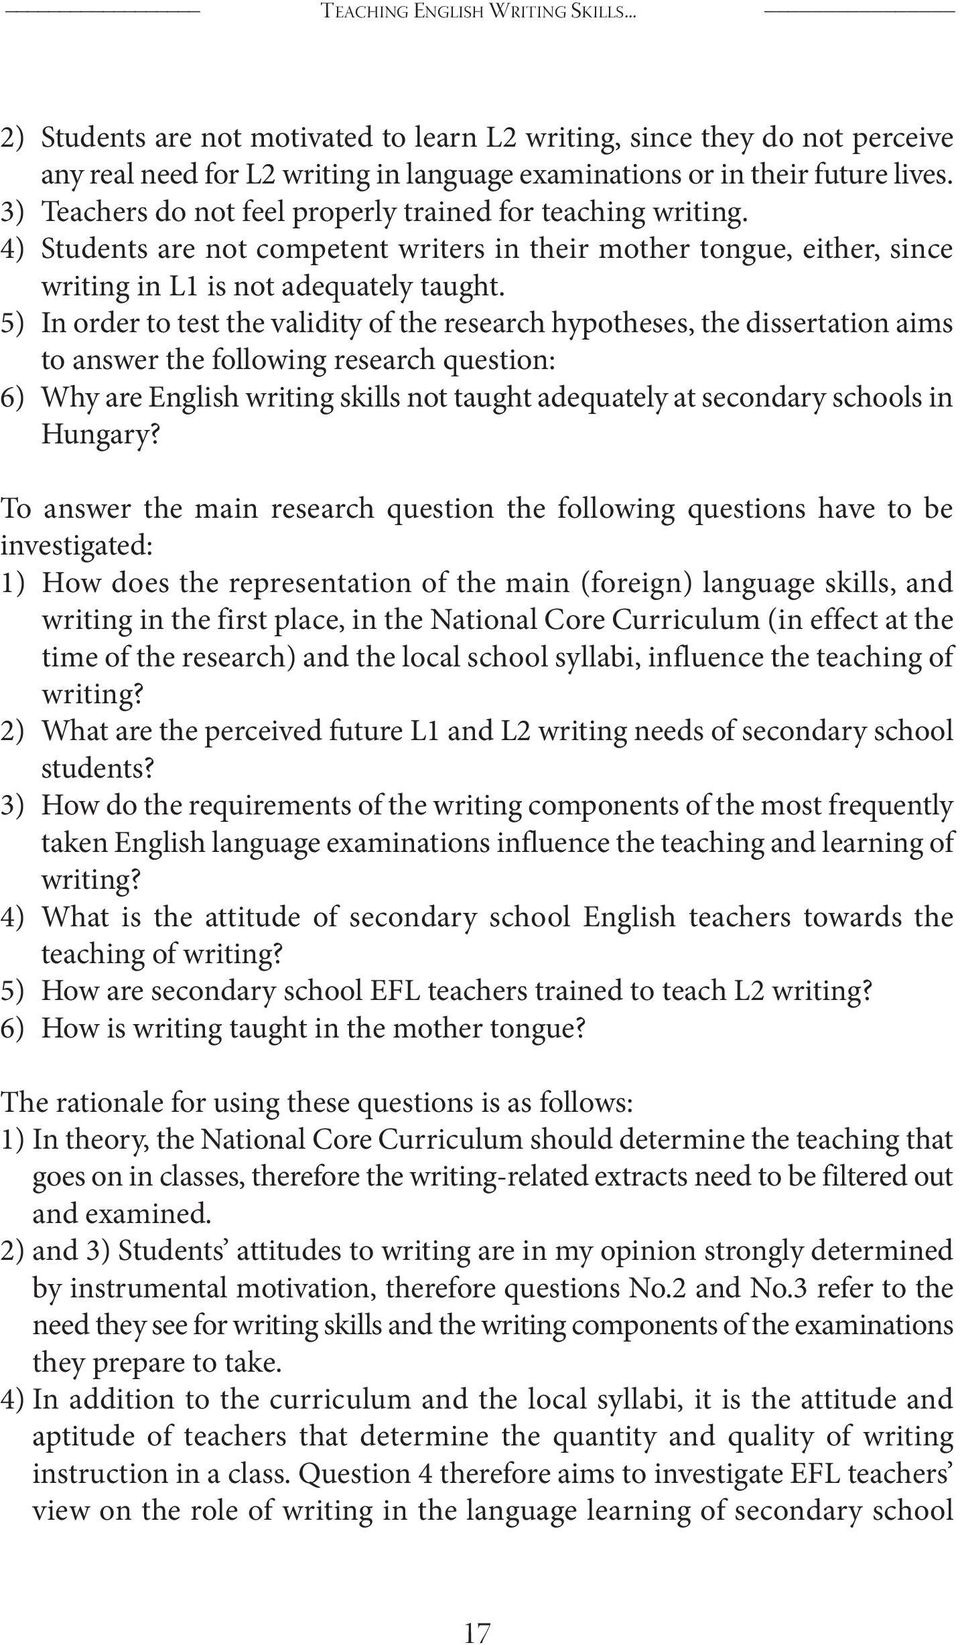 5) In order to test the validity of the research hypotheses, the dissertation aims to answer the following research question: 6) Why are English writing skills not taught adequately at secondary